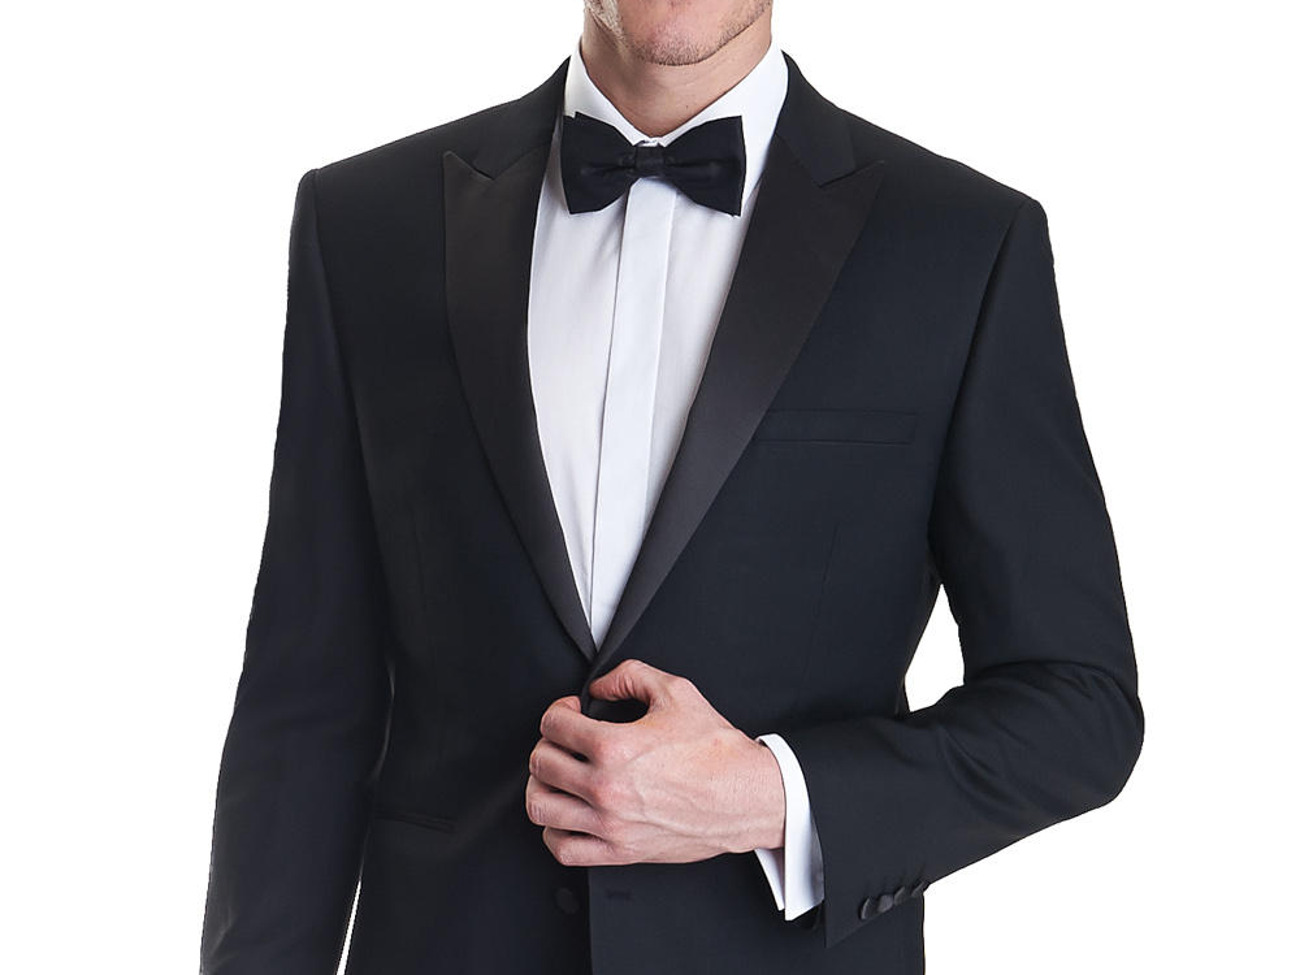 Rent Pierre Cardin Dinner Suit Jacket 38 Reg Trousers 32 Reg In Bexleyheath Rent For 1 00 Day